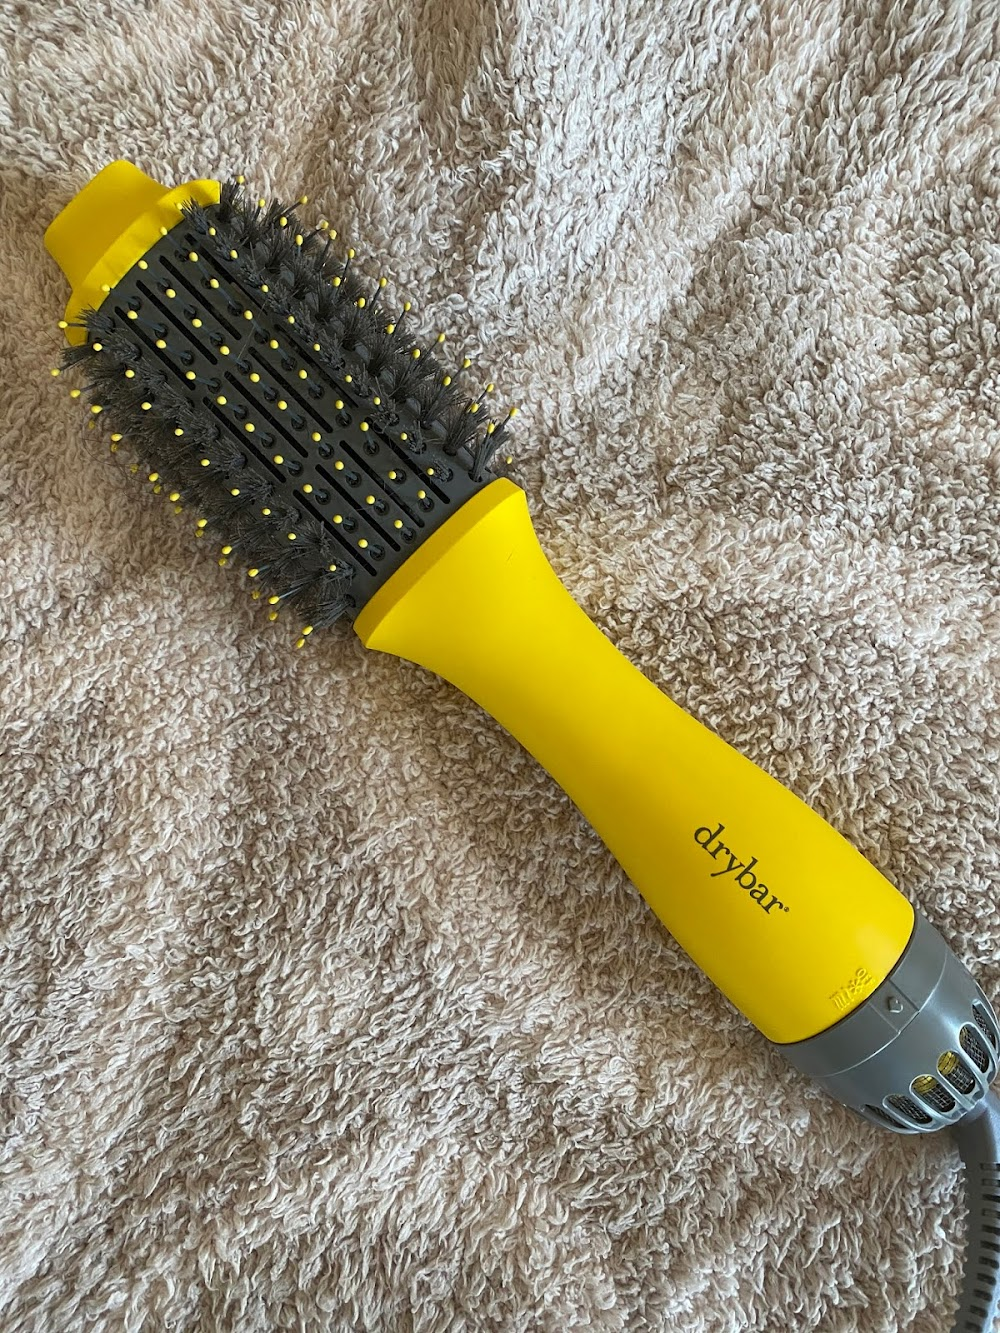 Beauty in Review: The Drybar Double Shot Blowout Brush